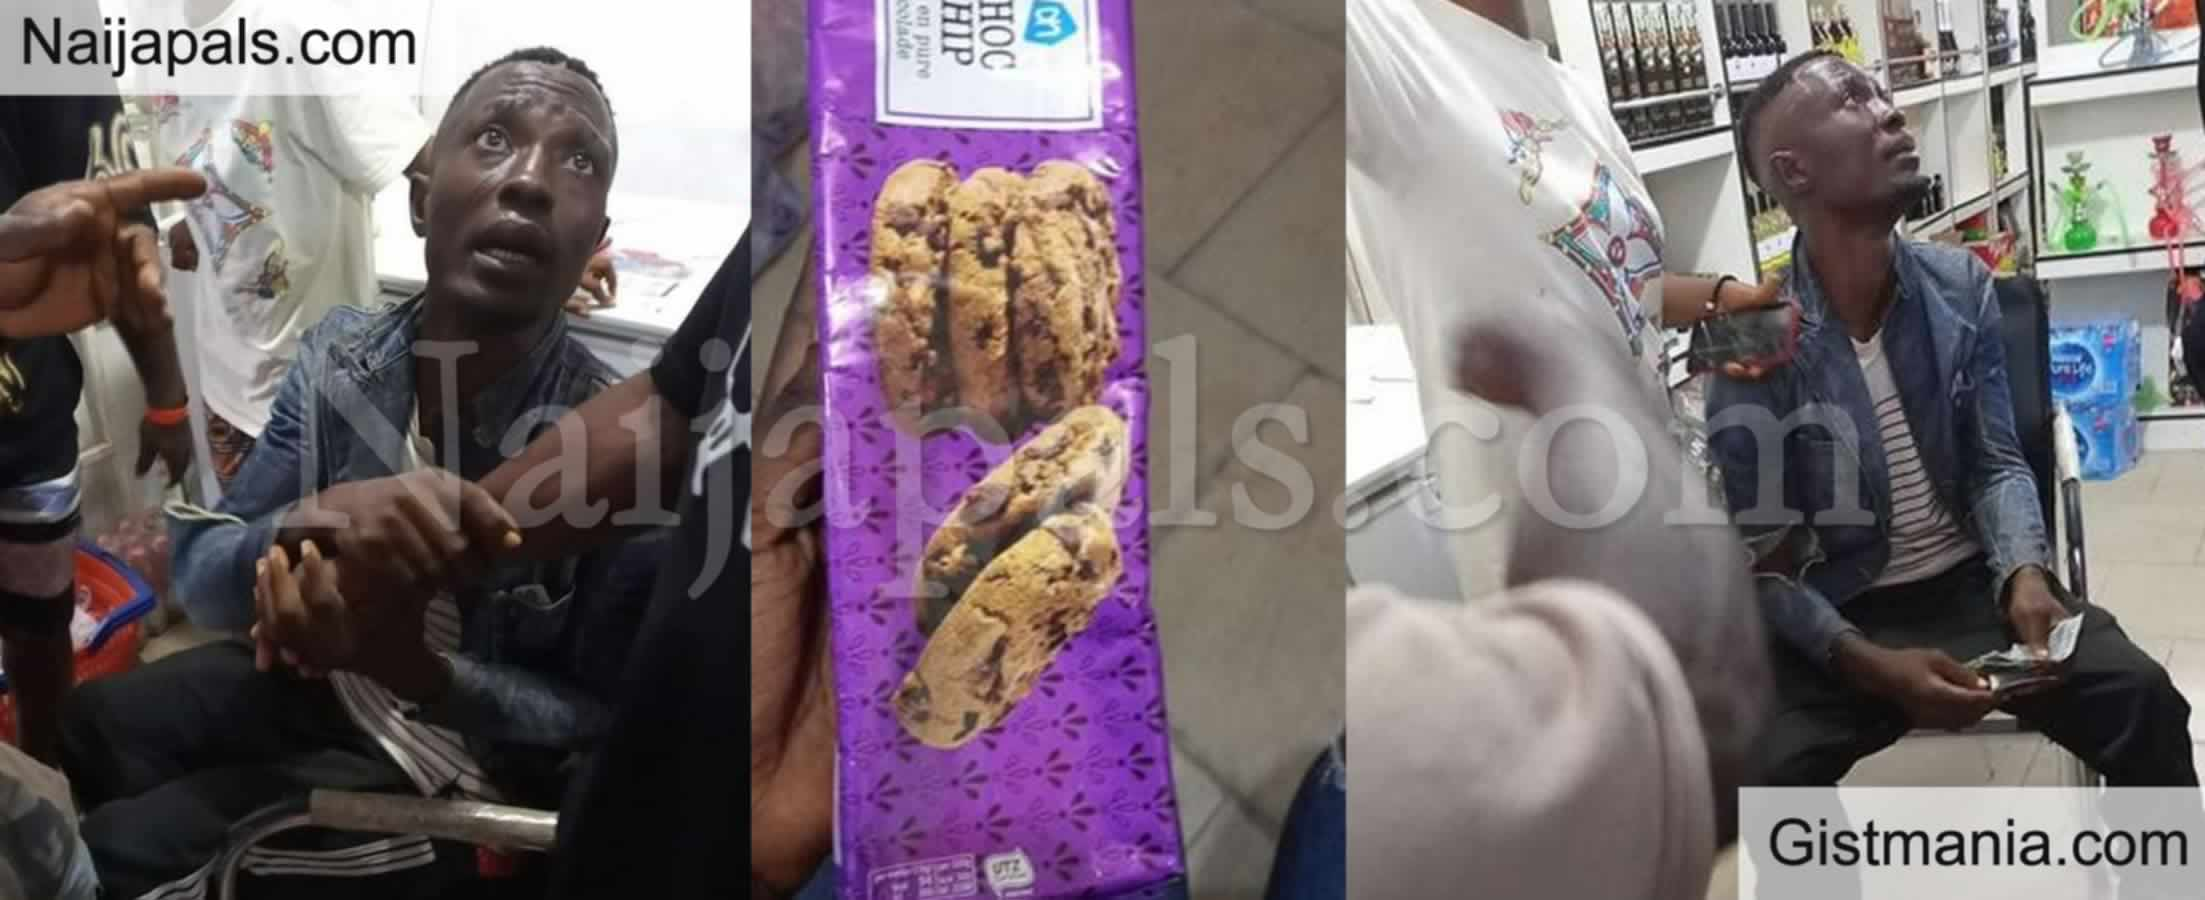 <img alt='.' class='lazyload' data-src='https://img.gistmania.com/emot/thumbs_down.gif' /> <b>Thief Who Specializes In Stealing 'Expensive Biscuits' From Supermarkets Nabbed</b> In Delta -PHOTO